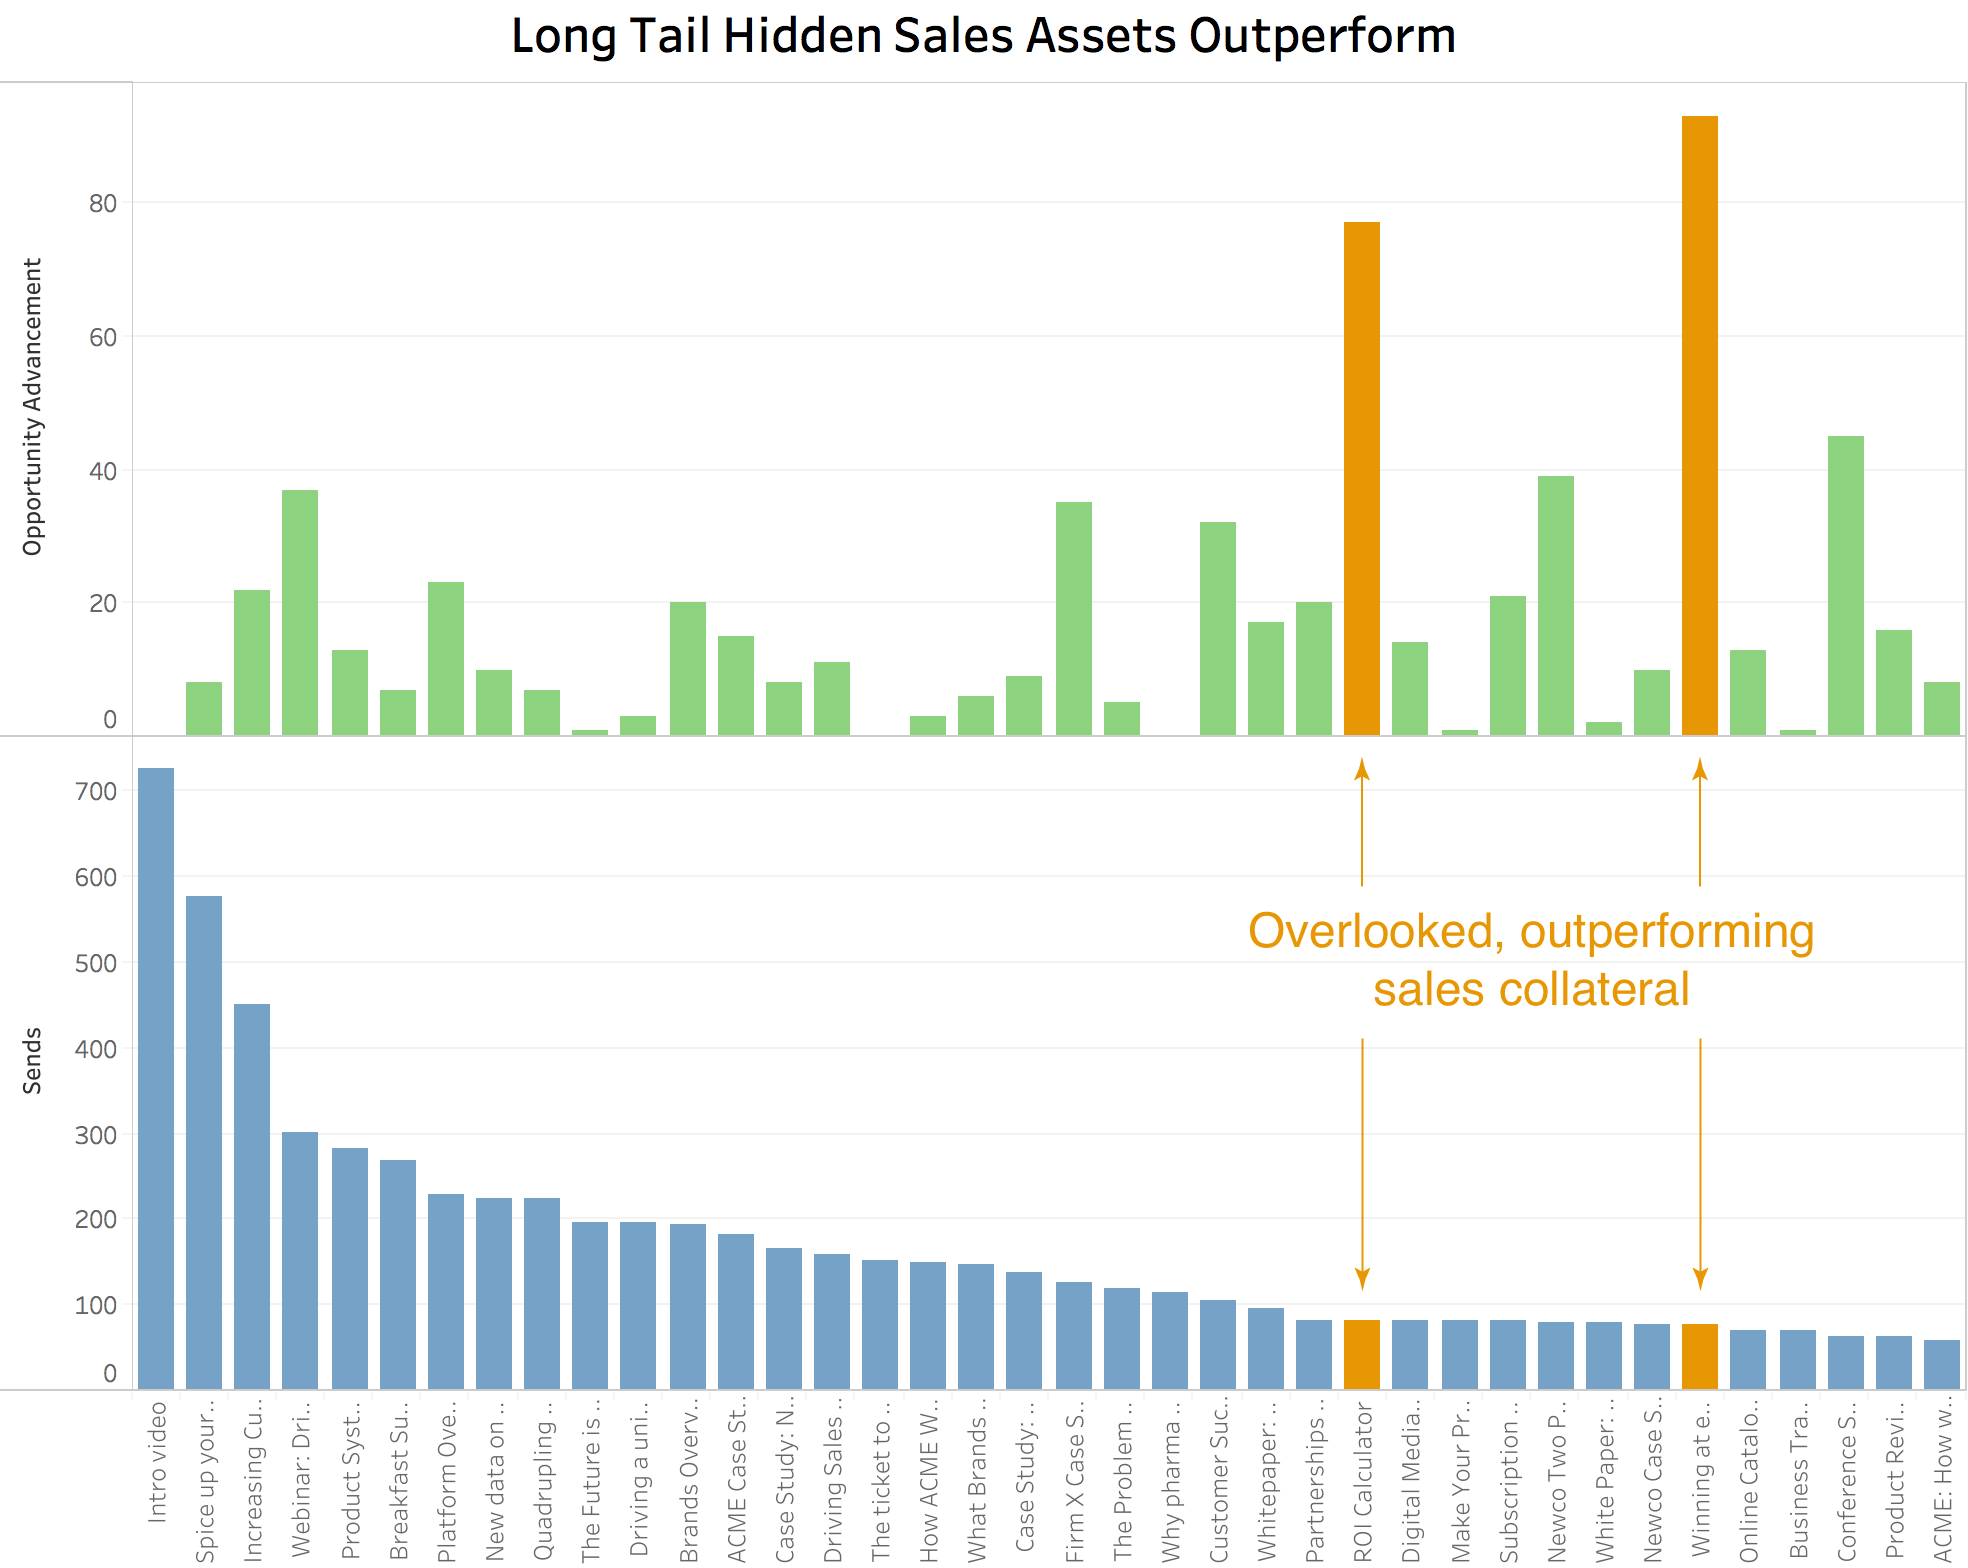 Long tail hidden sales assets